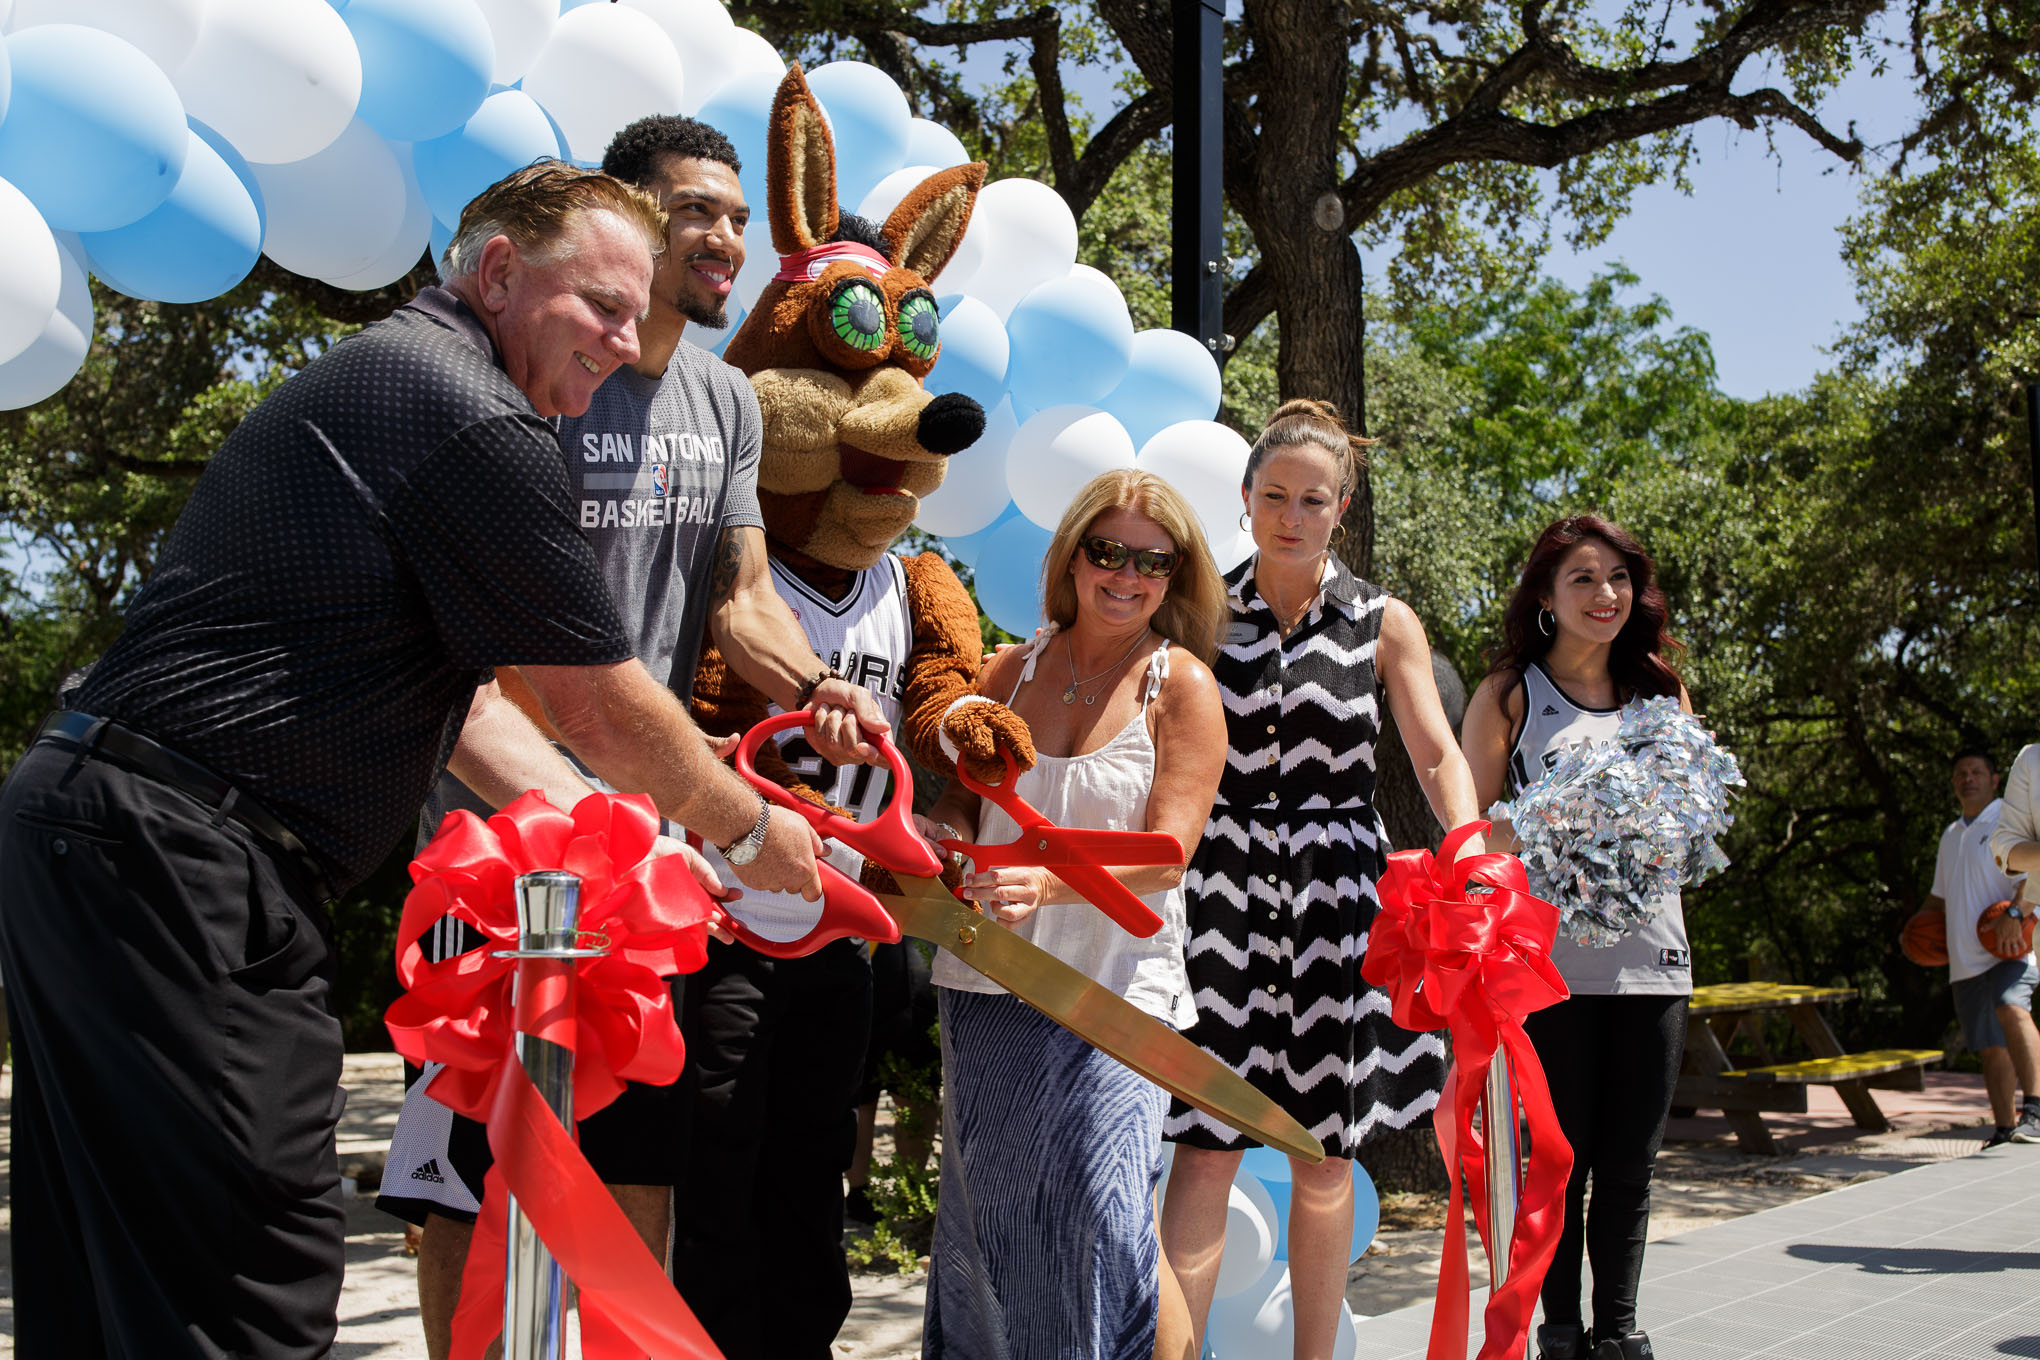 (left to right) Cory Basso, Danny Green, Spurs Coyote, Susan Moulton, and Laura Dixon cut the ribbon unveiling the newly installed basketball court at The Children's Shelter Residential Treatment Center. Photo by Scott Ball.